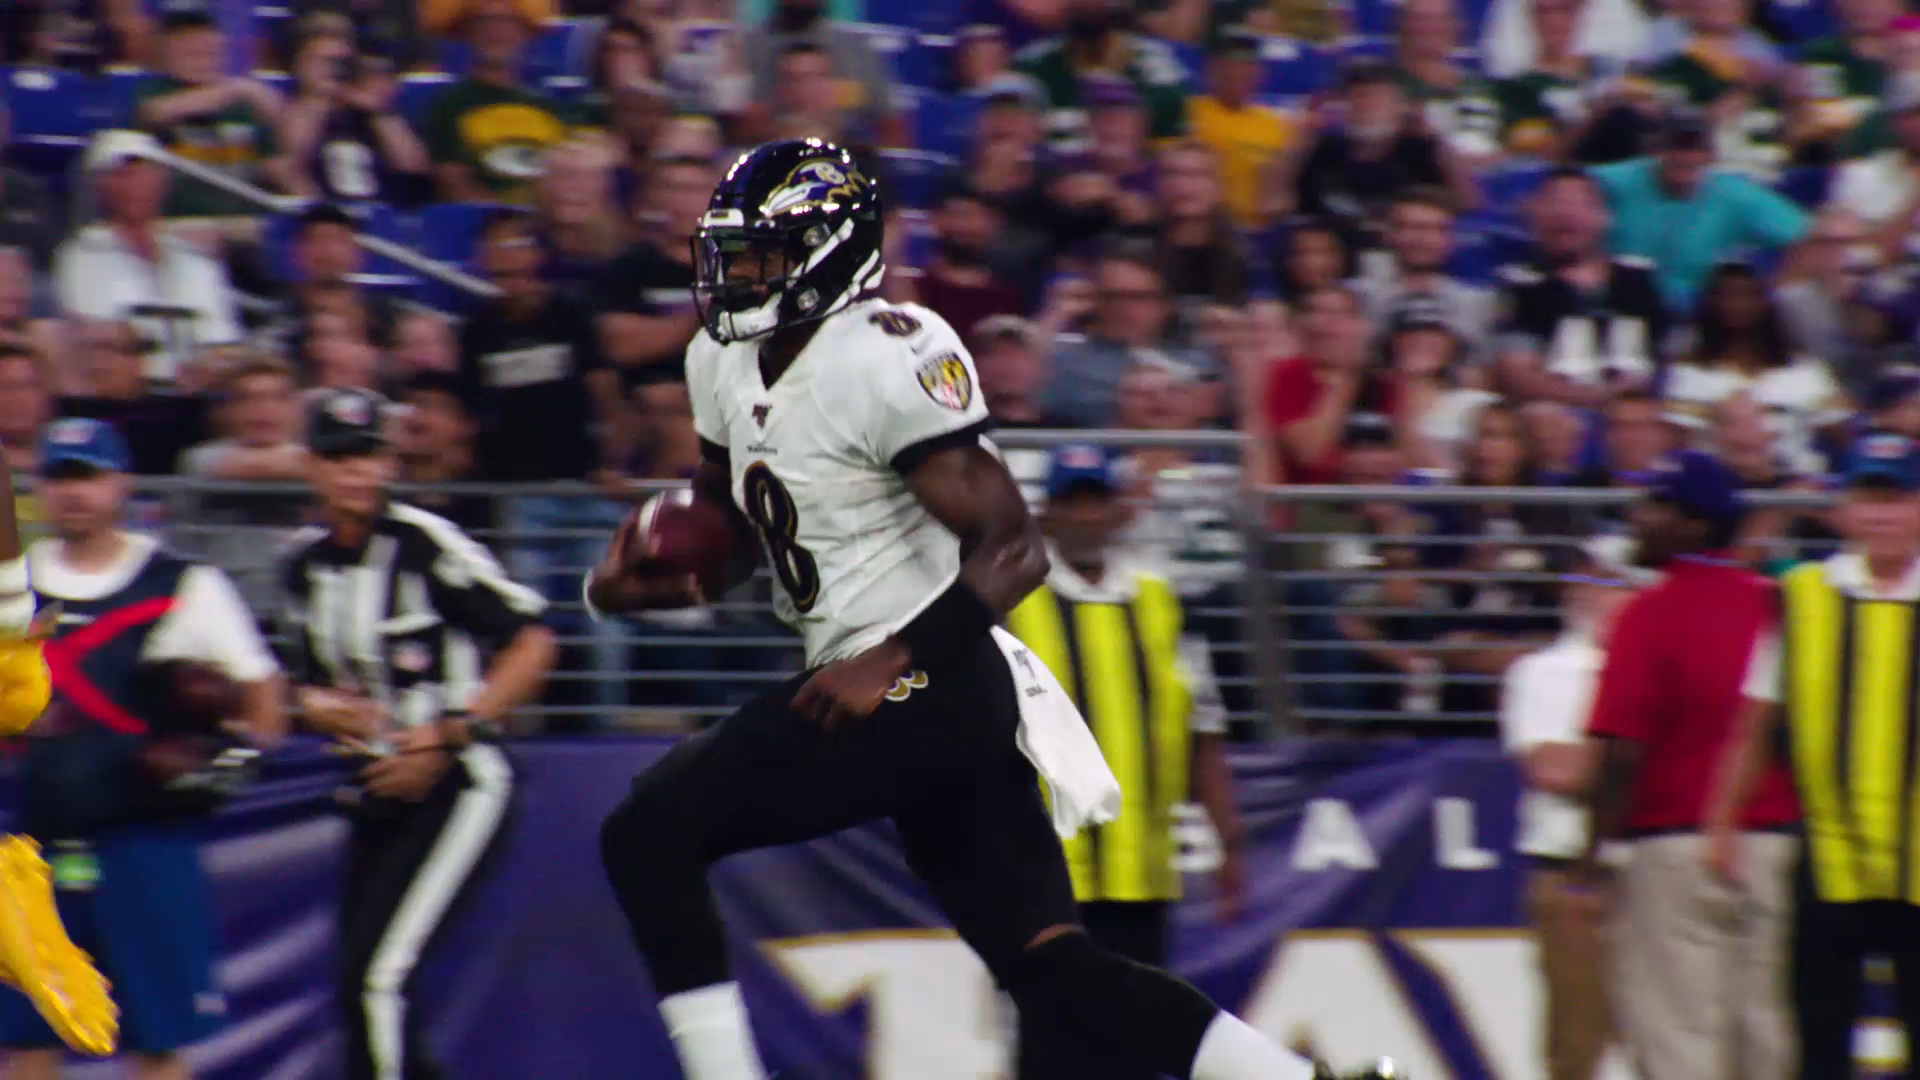 Ravens Final Drive: The impact of Lamar Jackson's TD run that didn't